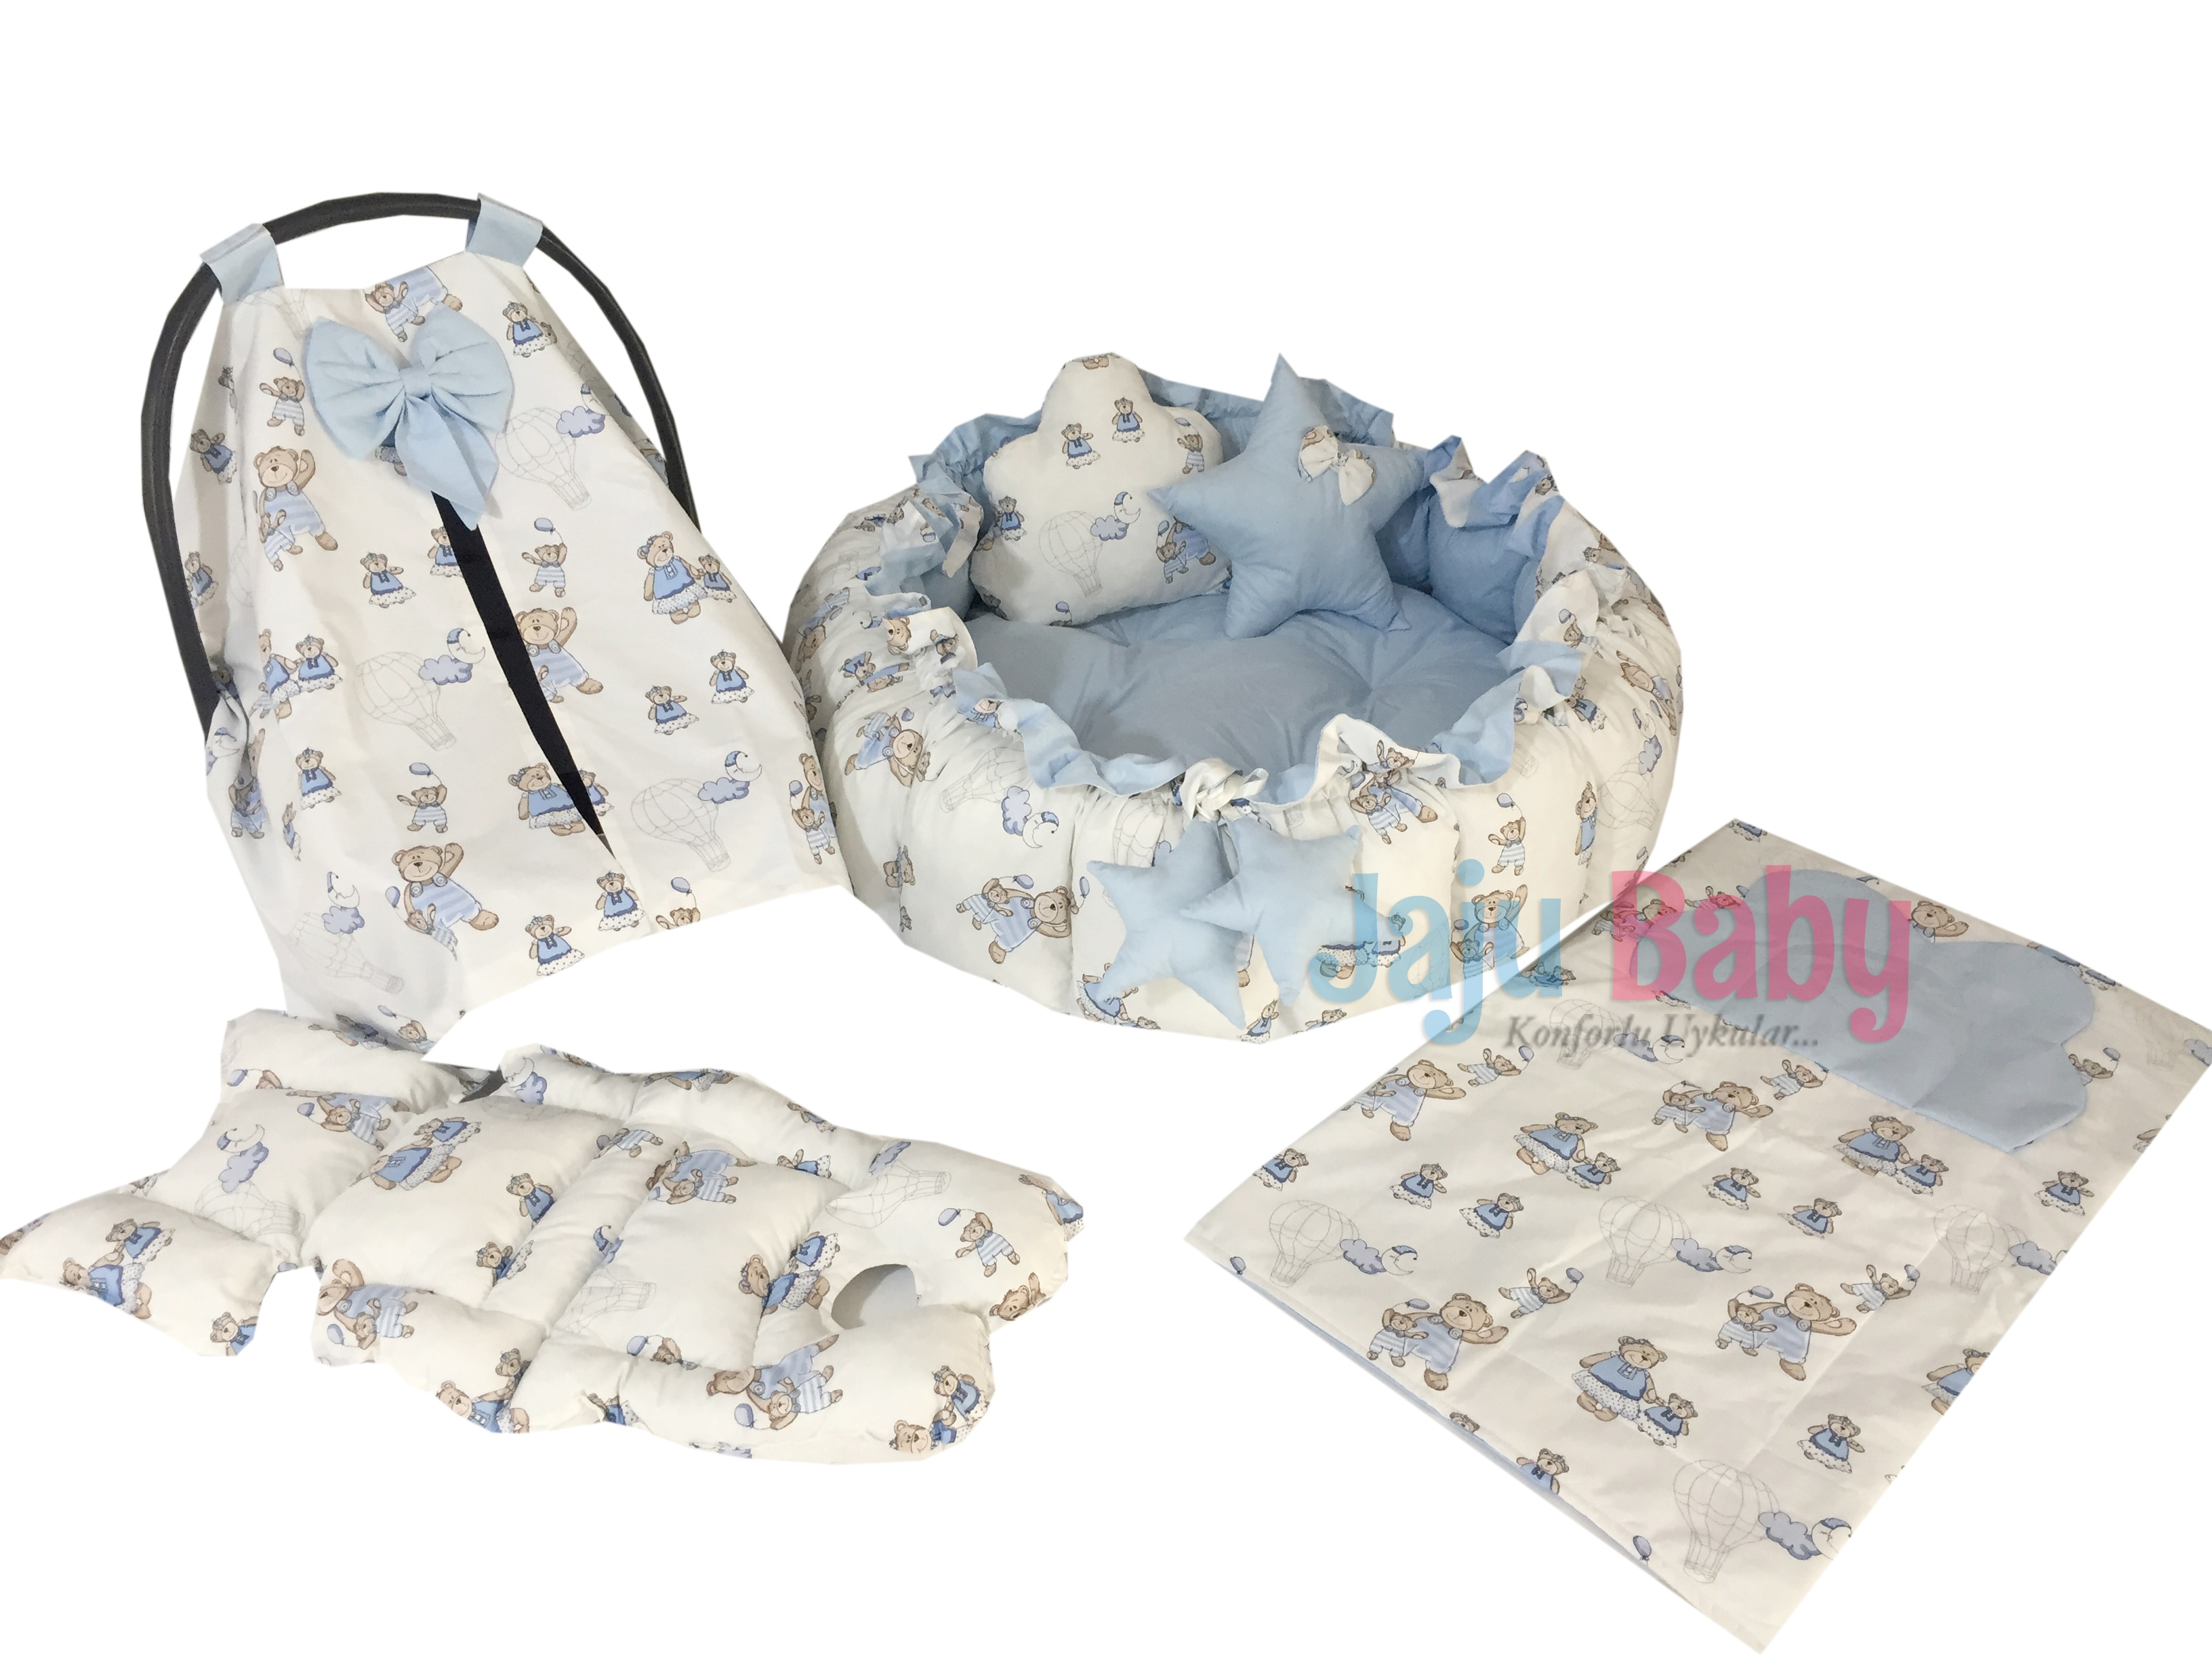 Jaju Baby Blue Bear Pattern Set Design Luxury Play Mat Babynest , Maternal Baby Bed, Retractable Play Mat